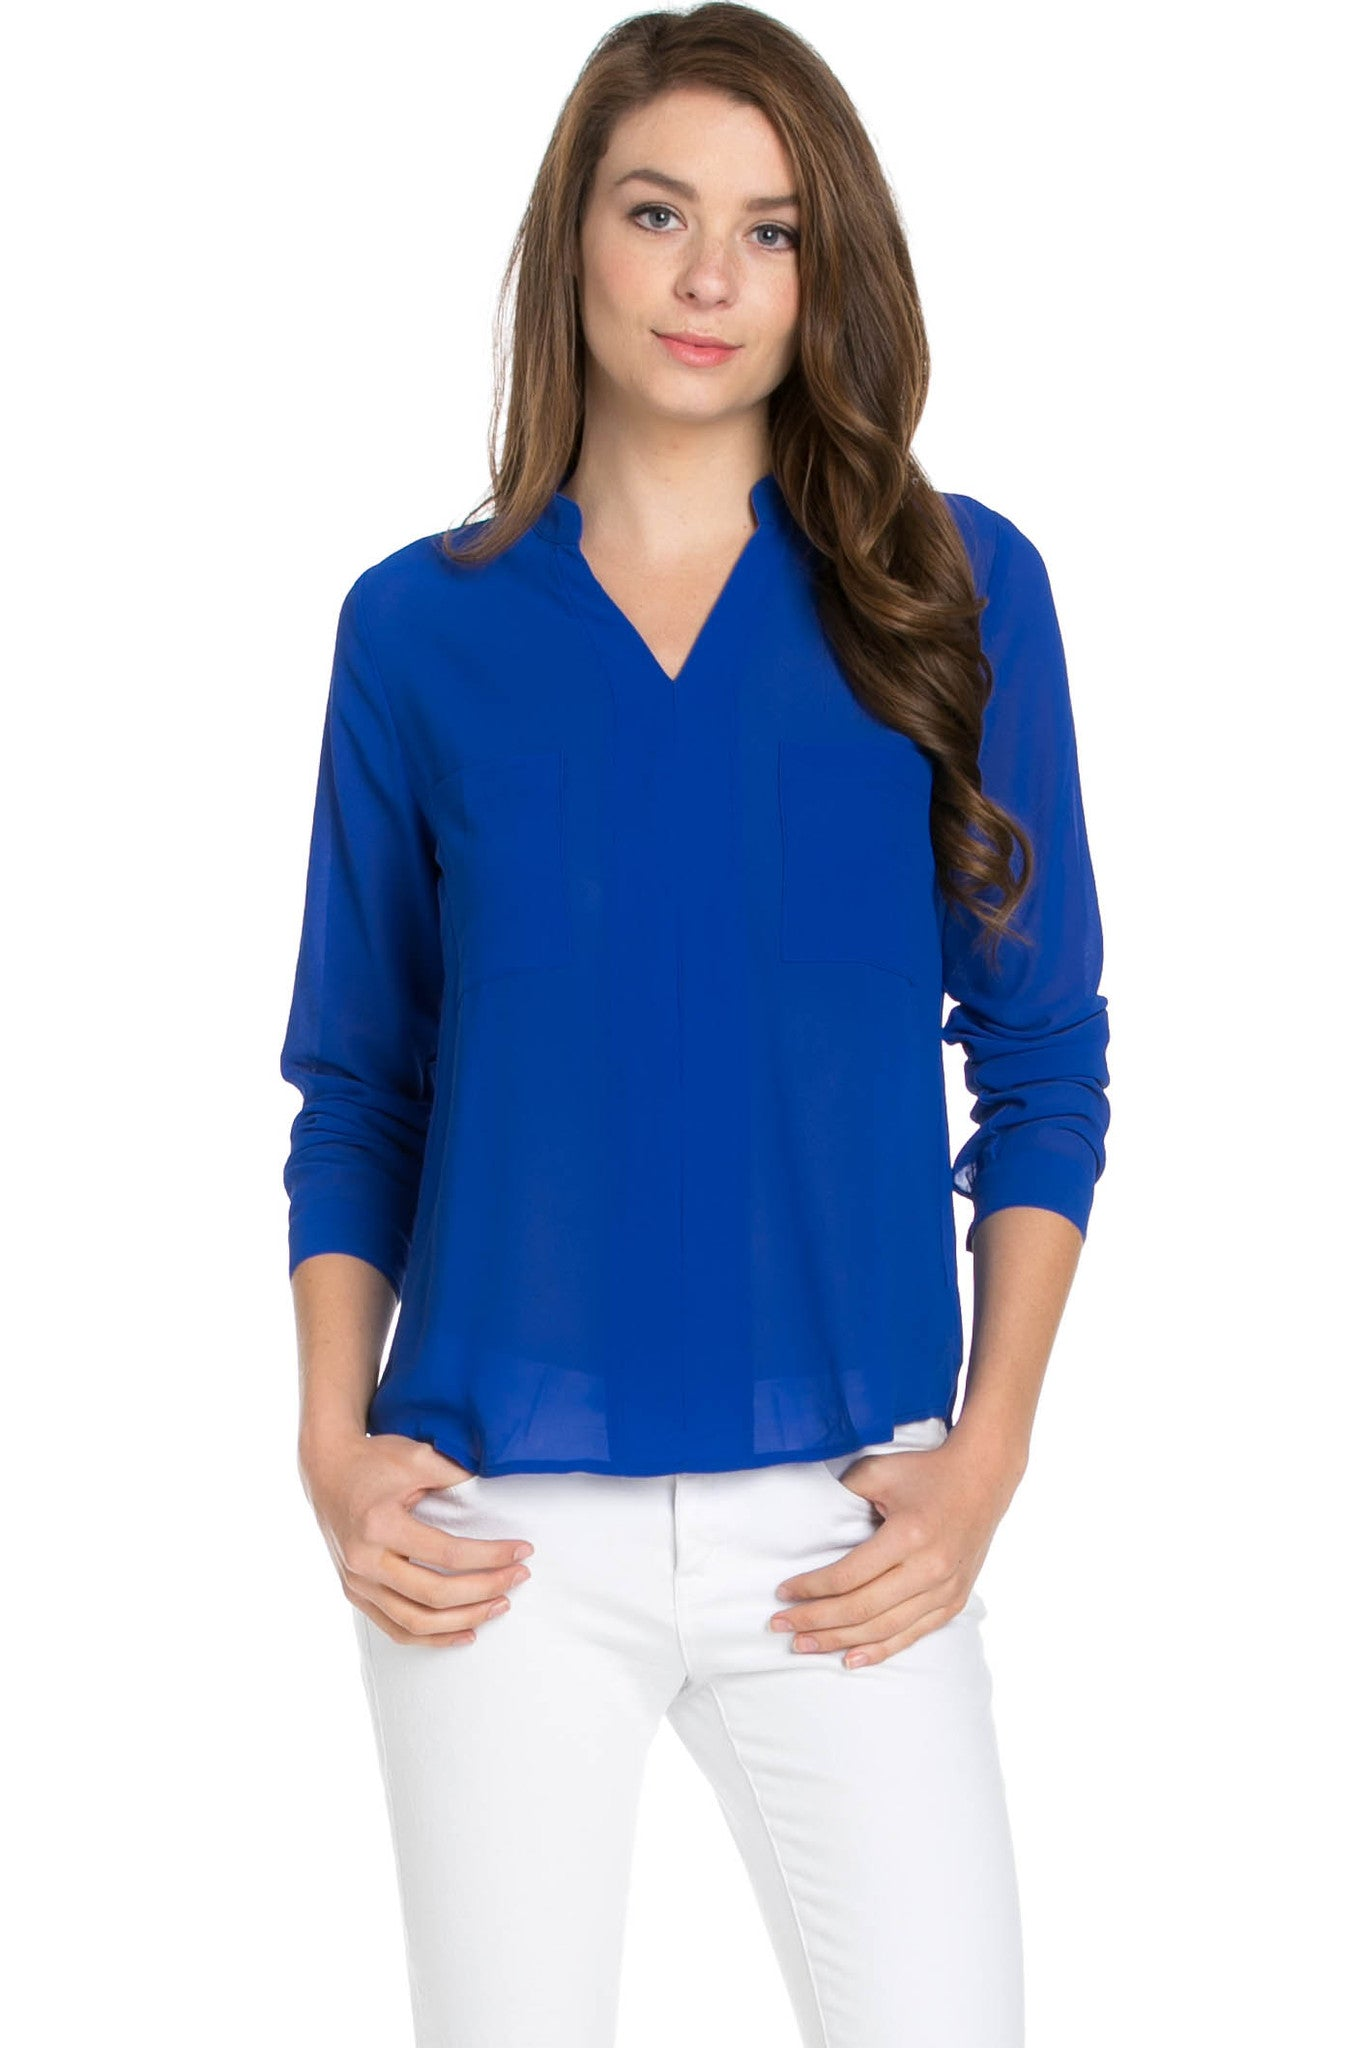 V-Neck Chiffon Blouse Dazzling Blue - Tops - My Yuccie - 1